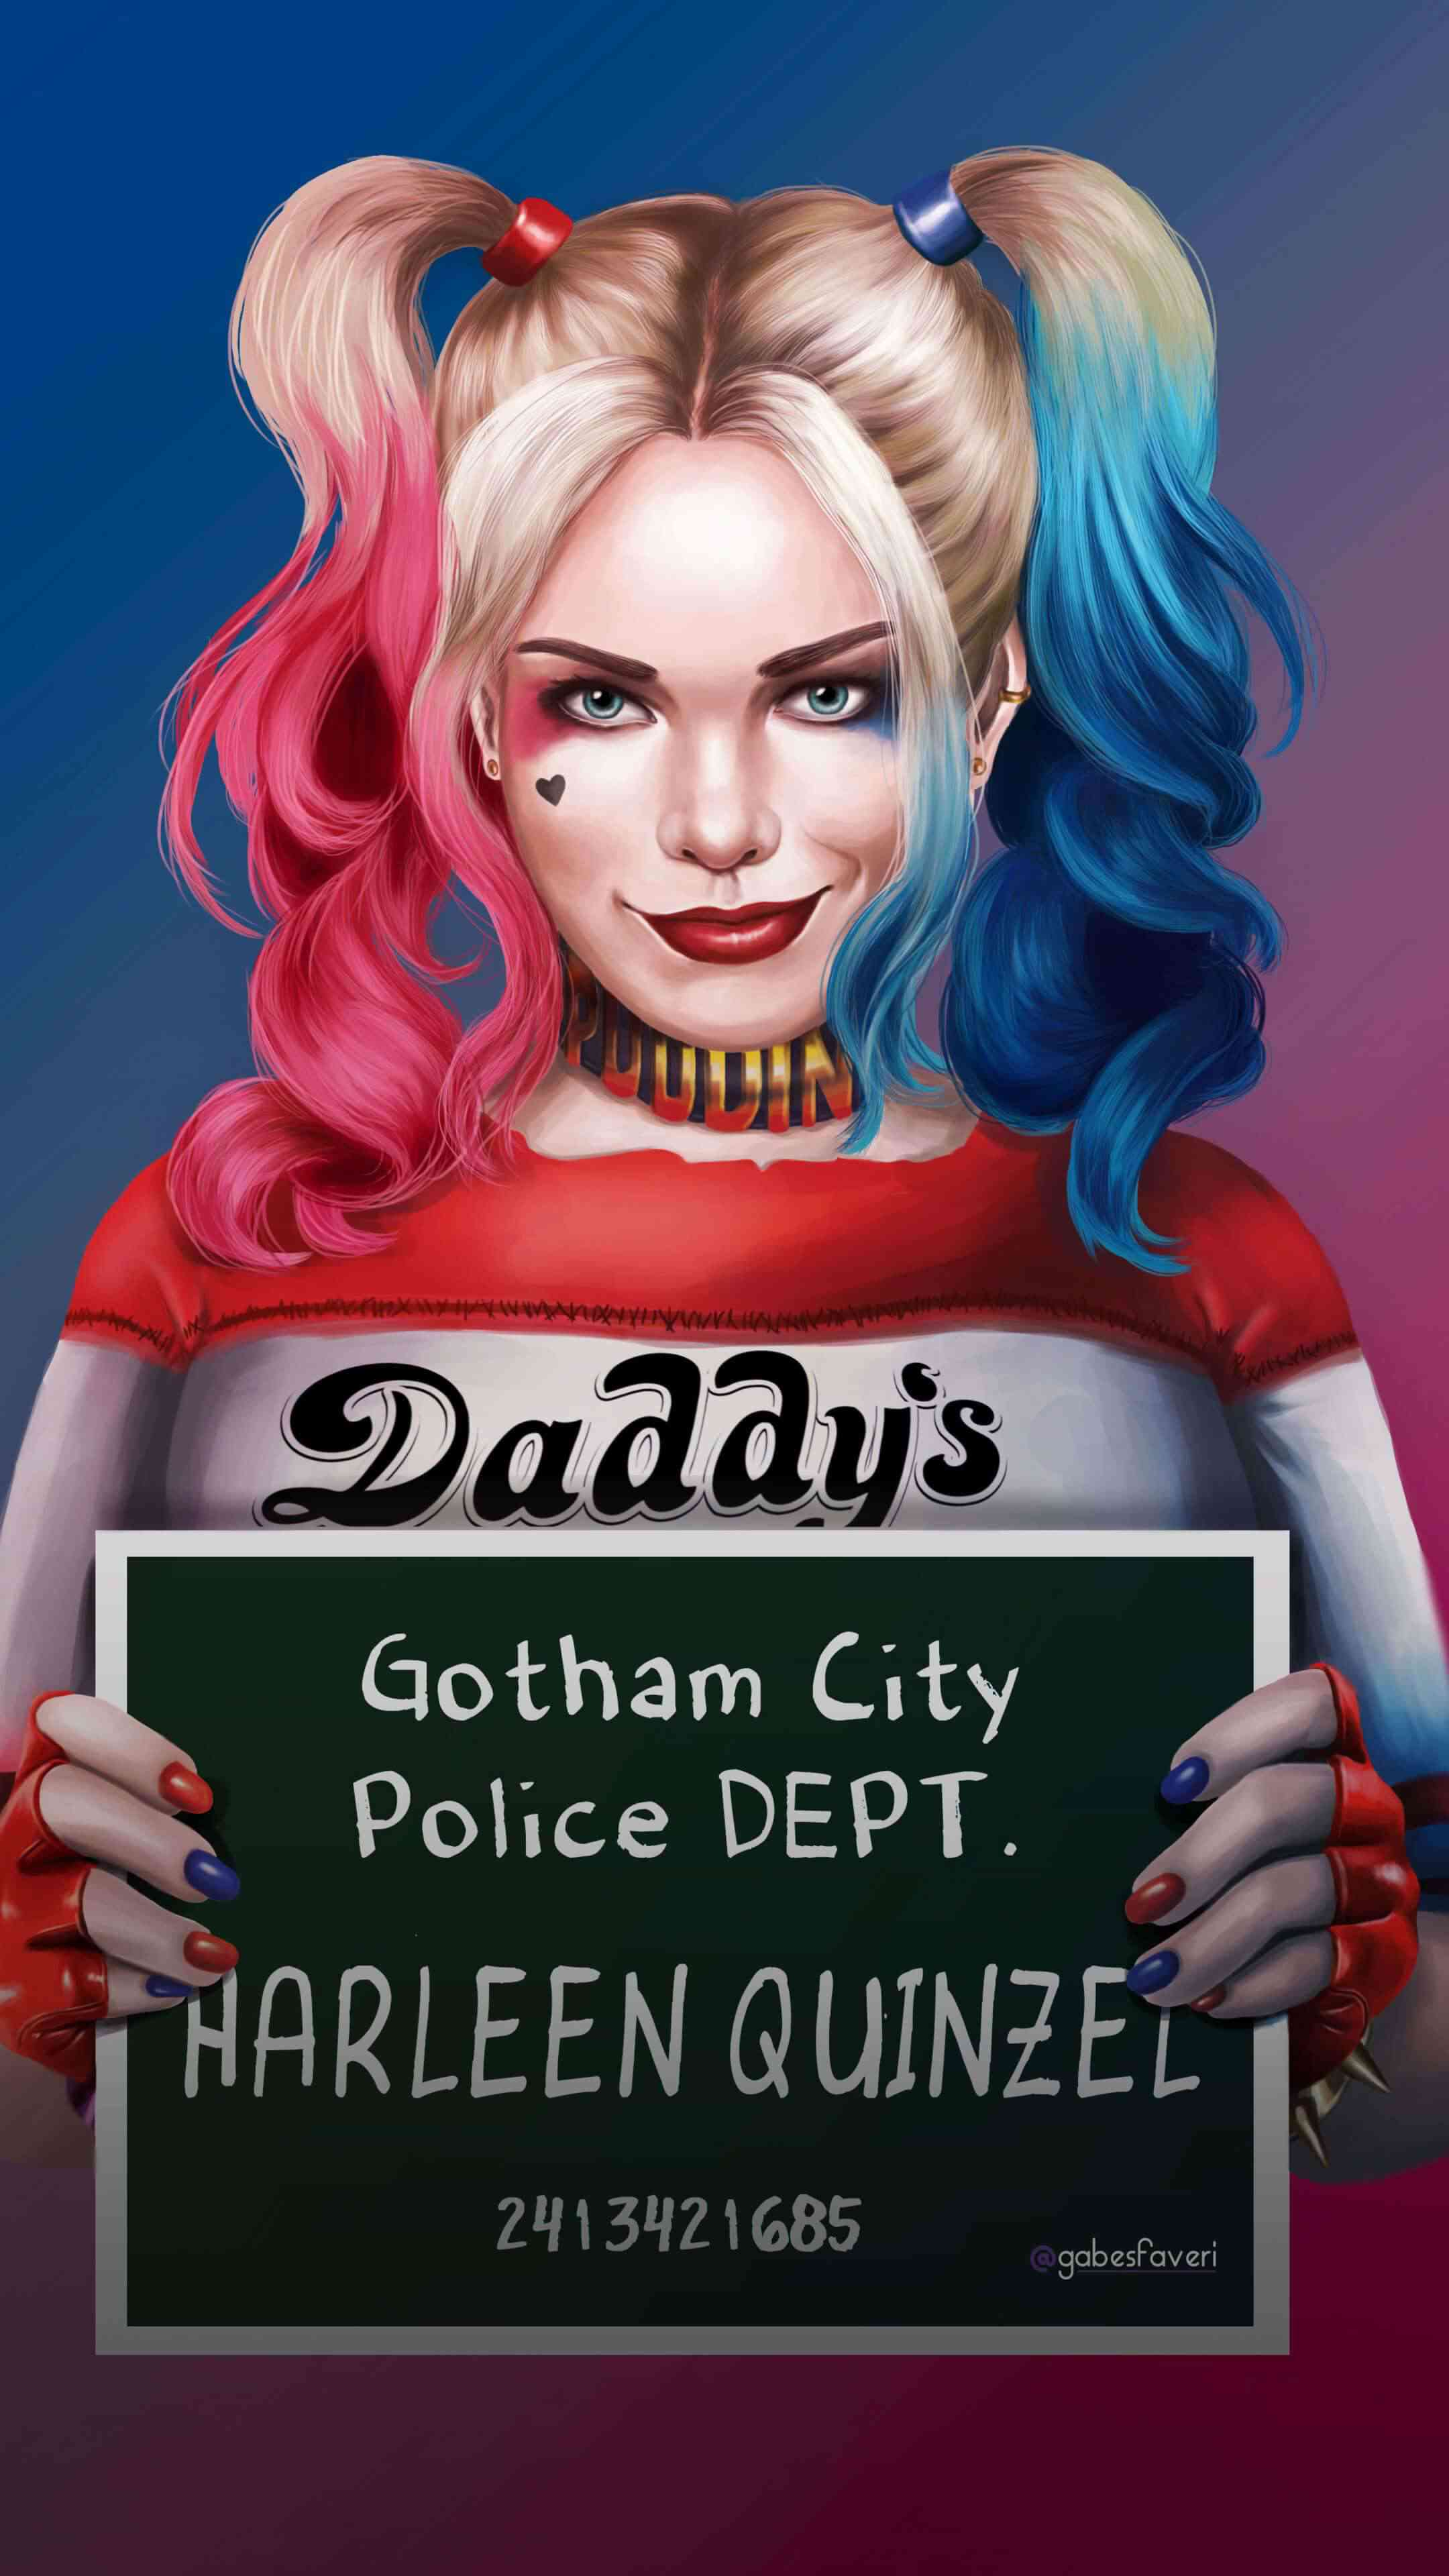 Cute Quotes Wallpapers For Desktop Harley Quinn Hd Iphone Wallpaper Iphone Wallpapers